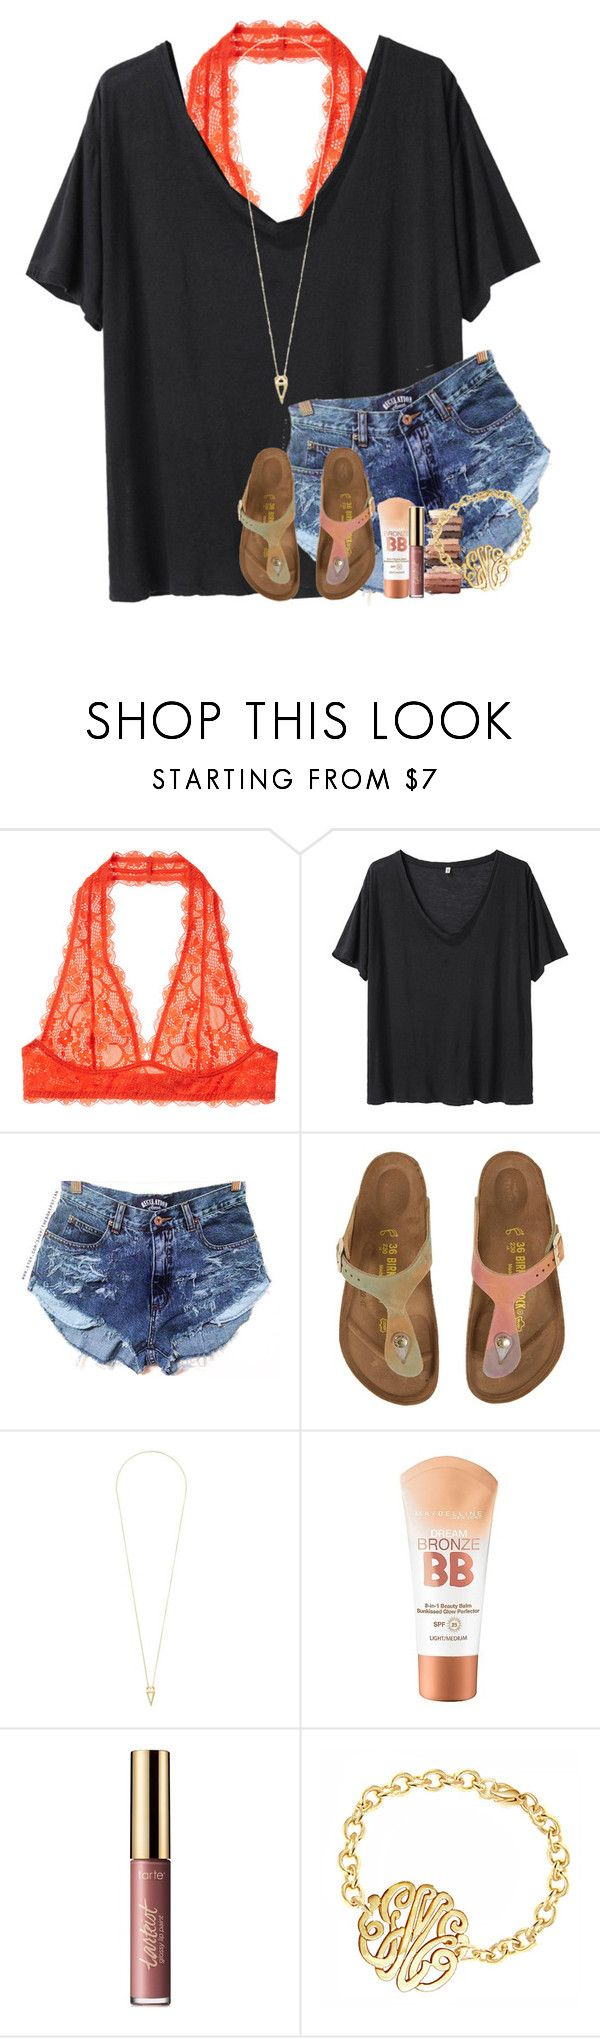 """""""&&; grab my waist and put that body on me"""" by abbypj ❤ liked on Polyvore featuring Intimately Free People, R13, Birkenstock, Noor Fares, Maybelline and tarte"""